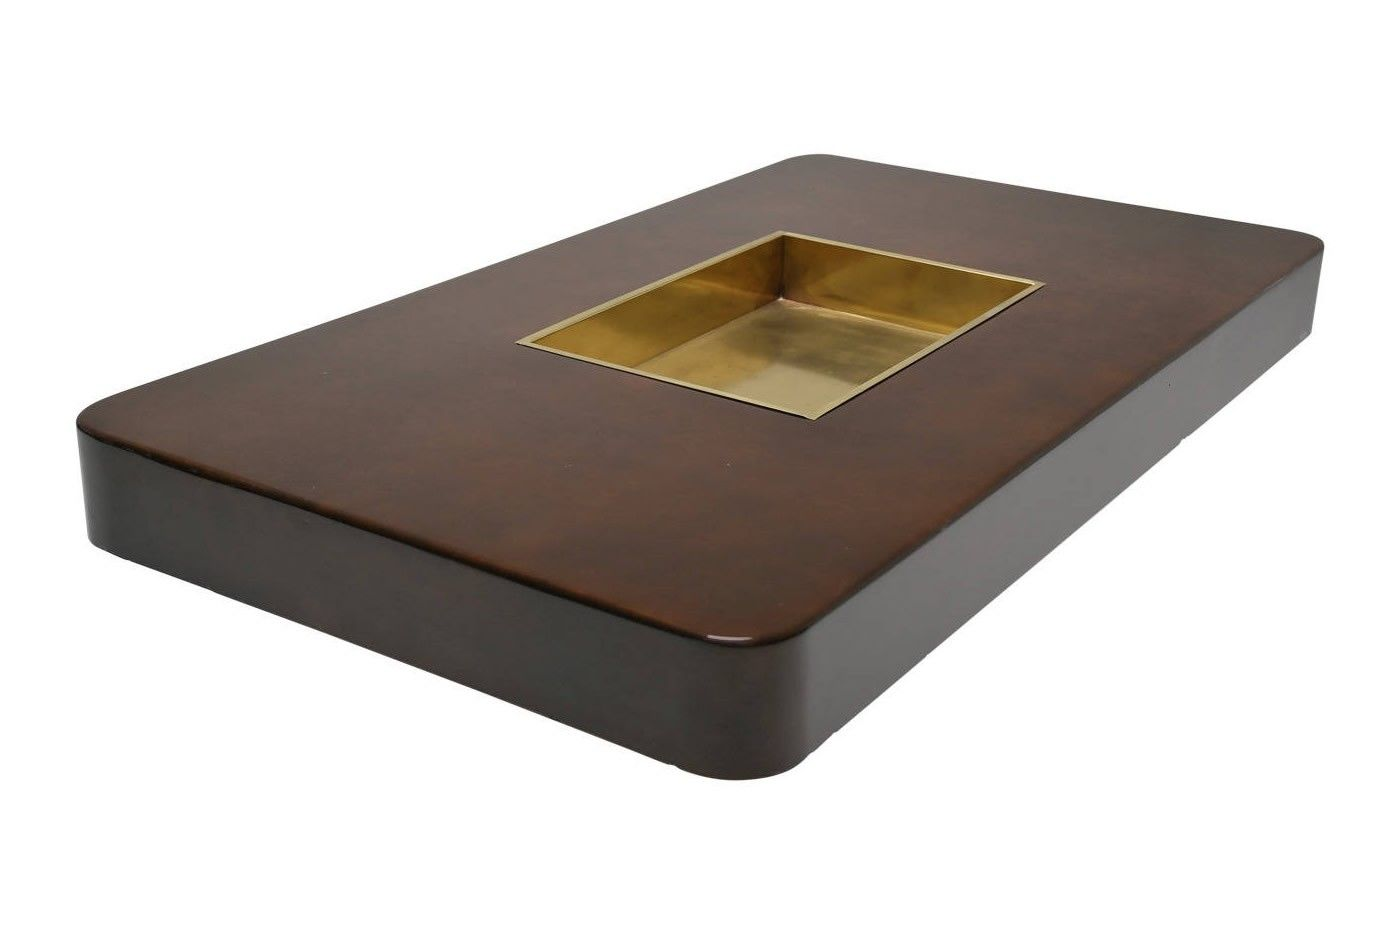 Vintage brown coffee table by willy rizzo for sale at pamono for Table willy rizzo